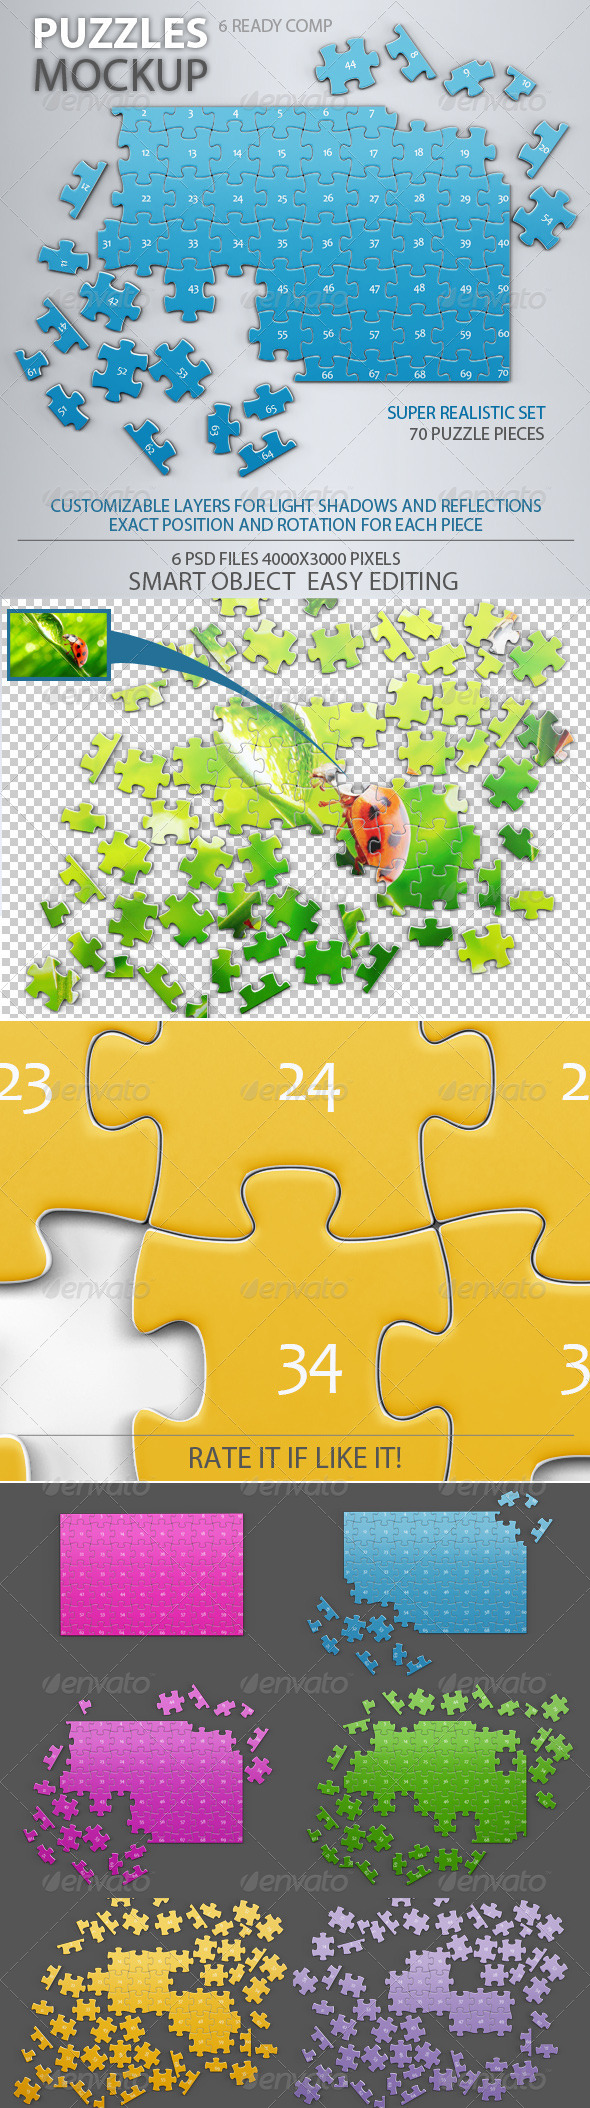 puzzles mock up graphics designs u0026 templates from graphicriver